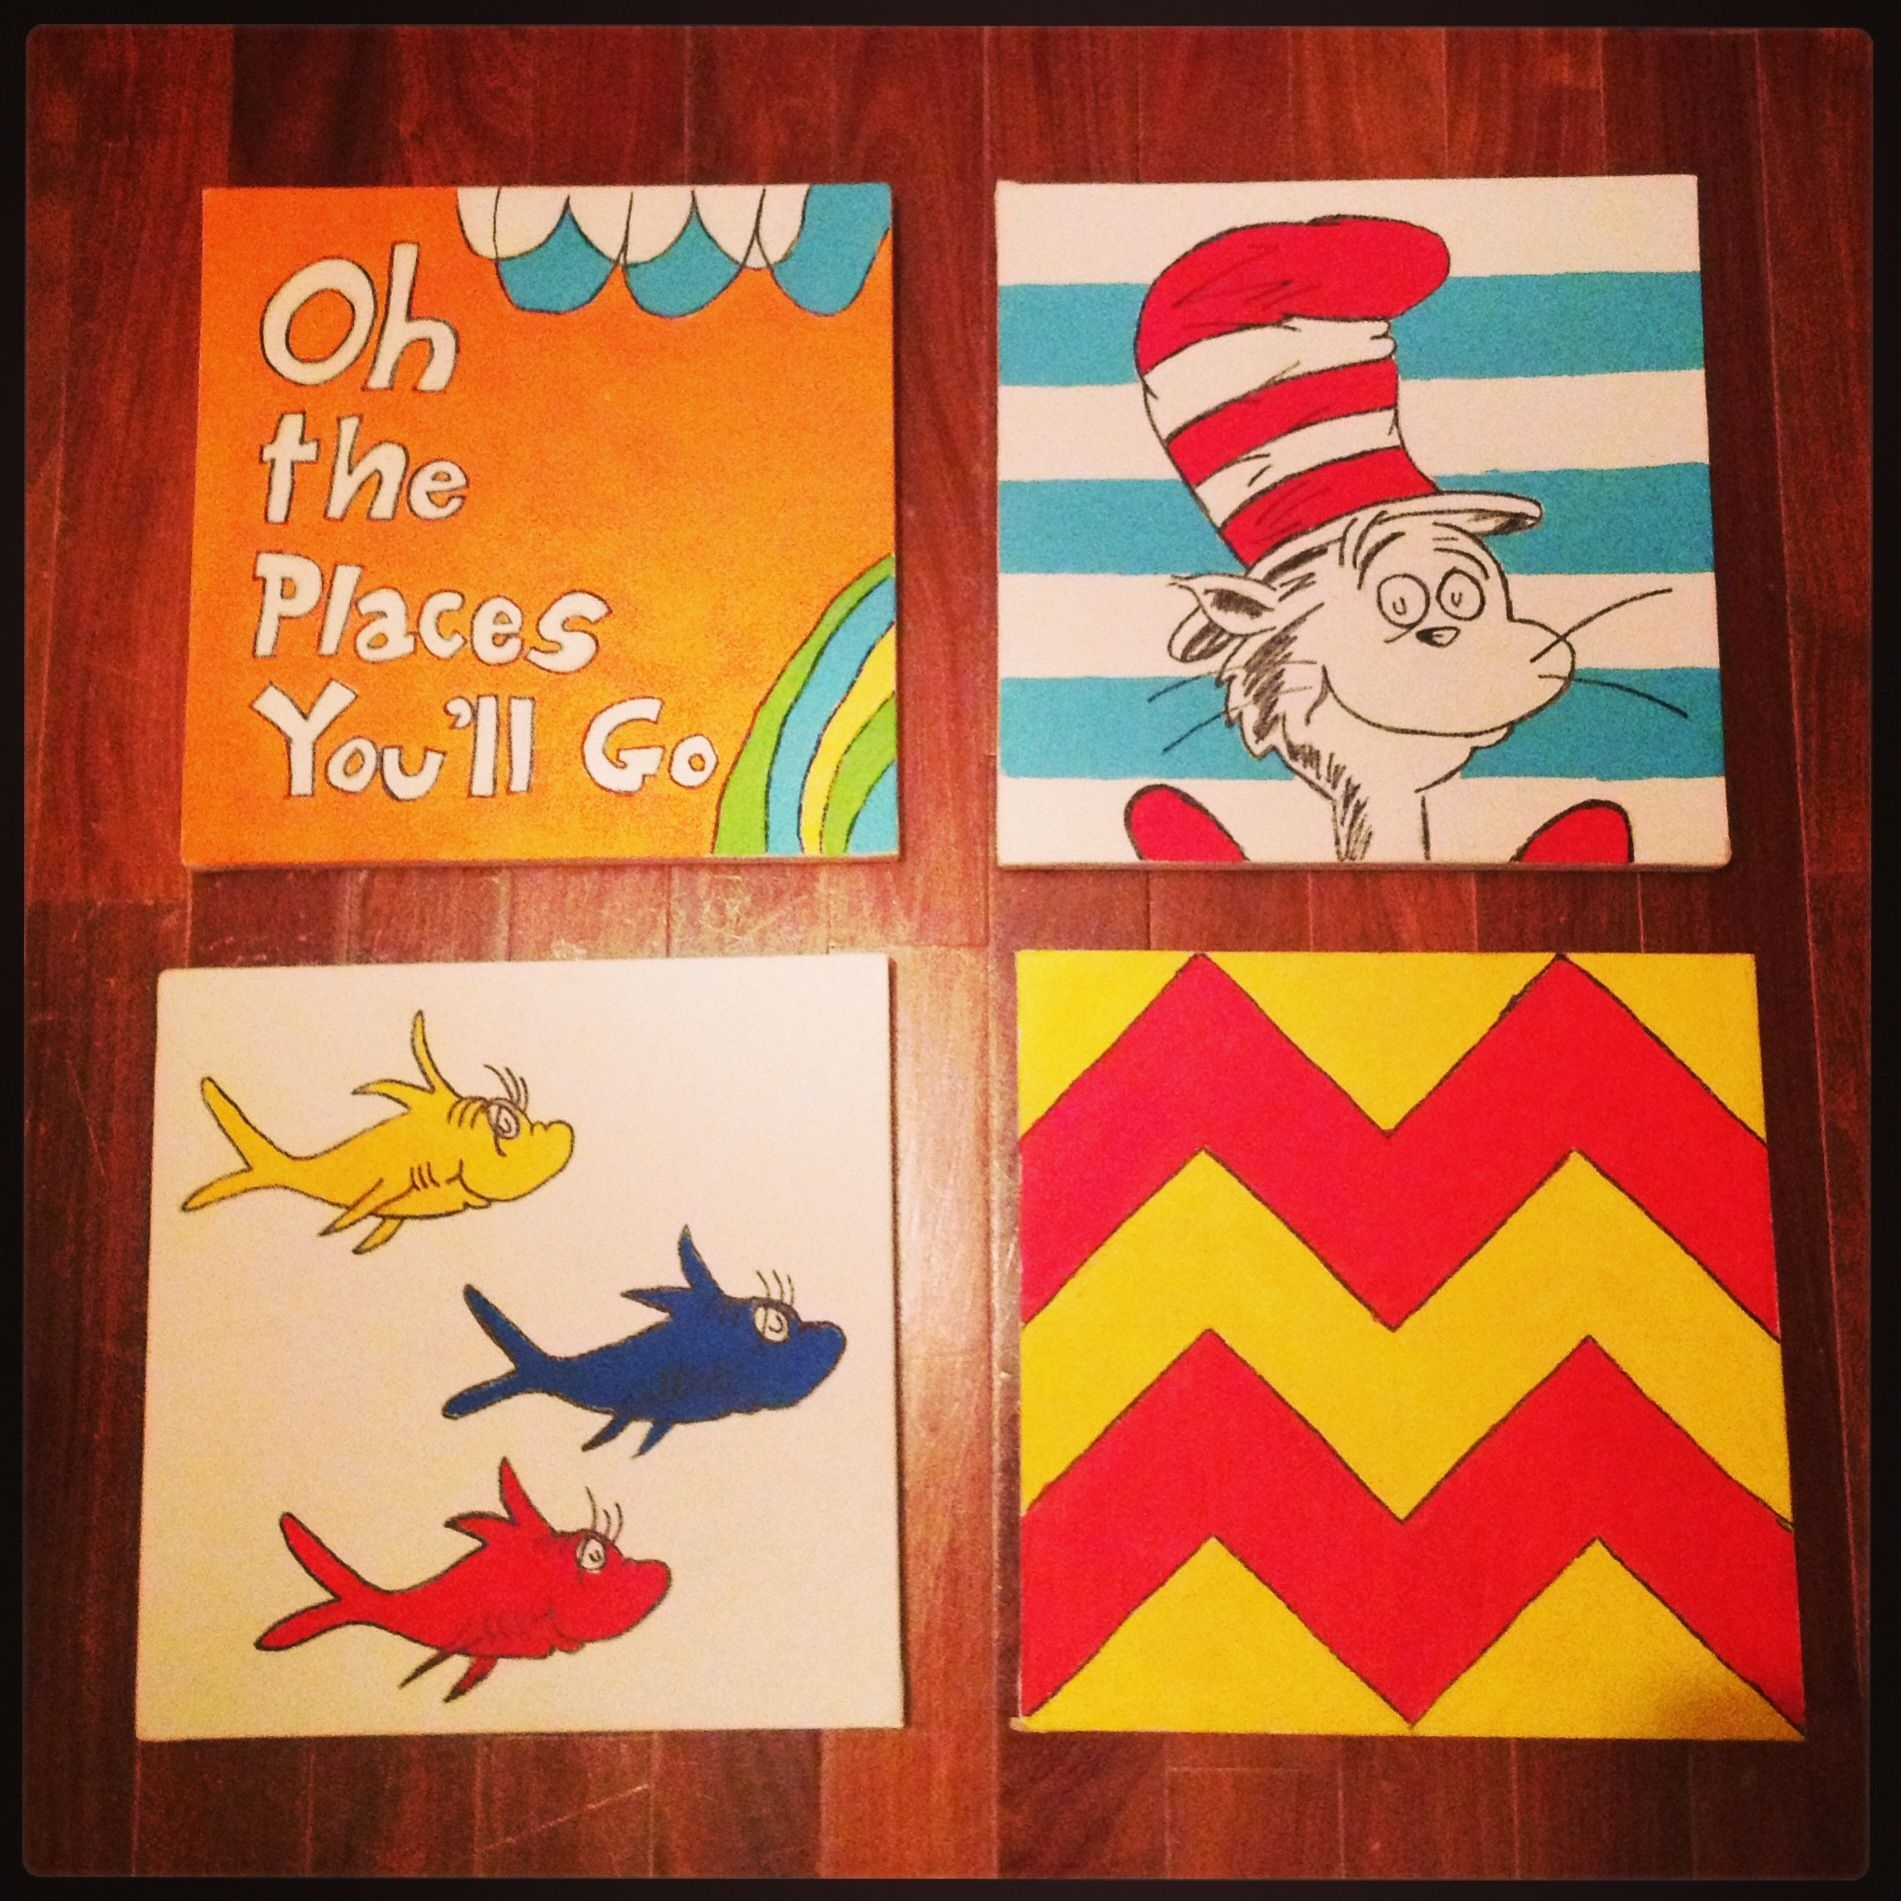 Dr Seuss Wall Art Decor Doneme (oringinal Pinner) For Omar's Within Dr Seuss Wall Art (View 12 of 20)